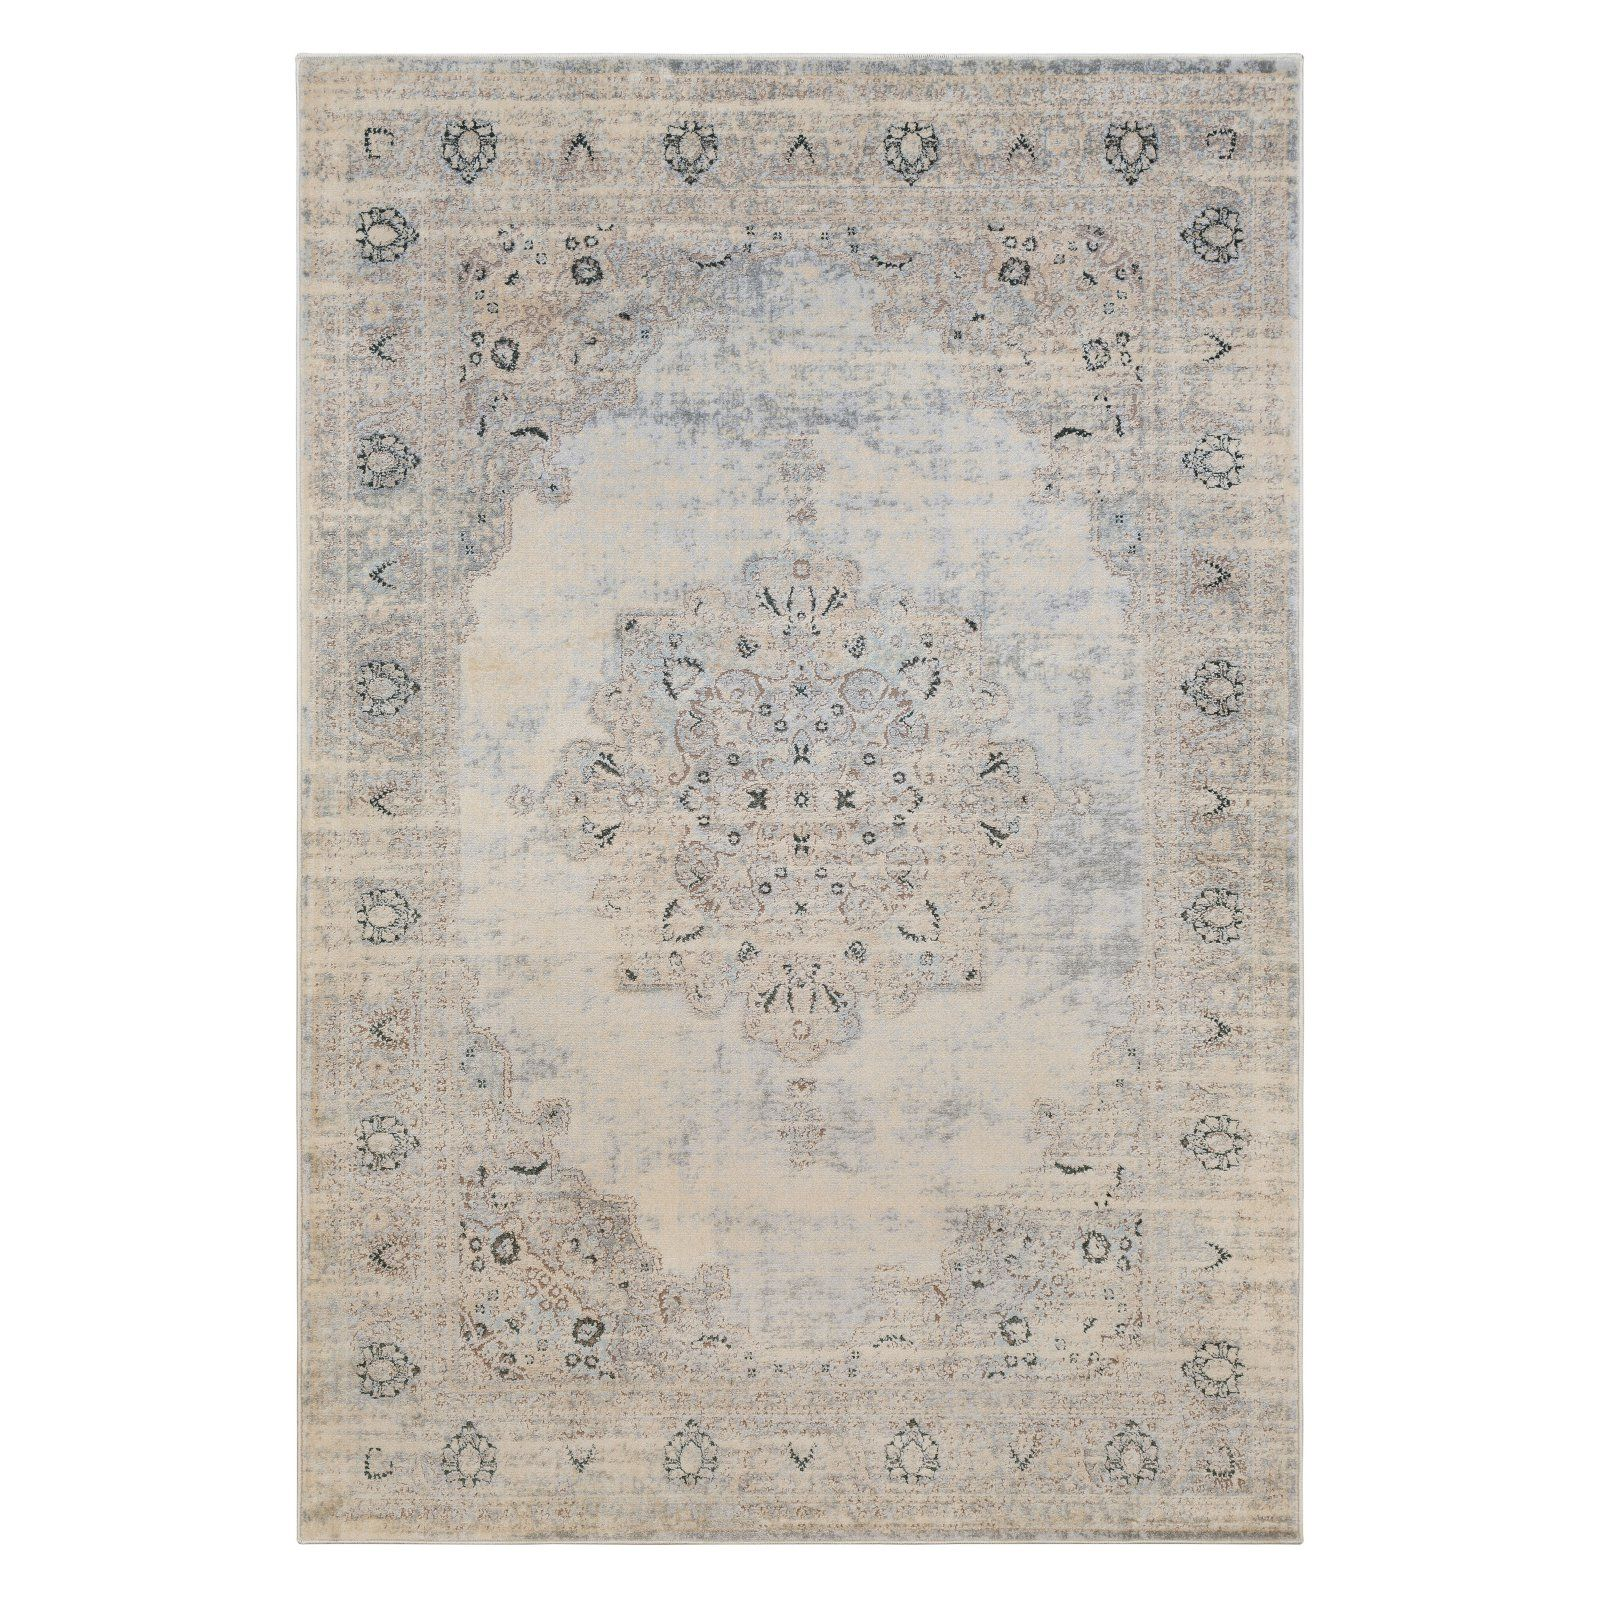 Photo of Surya Asia Minor Classic Medallion Indoor Space Rug Mild Grey/Cream